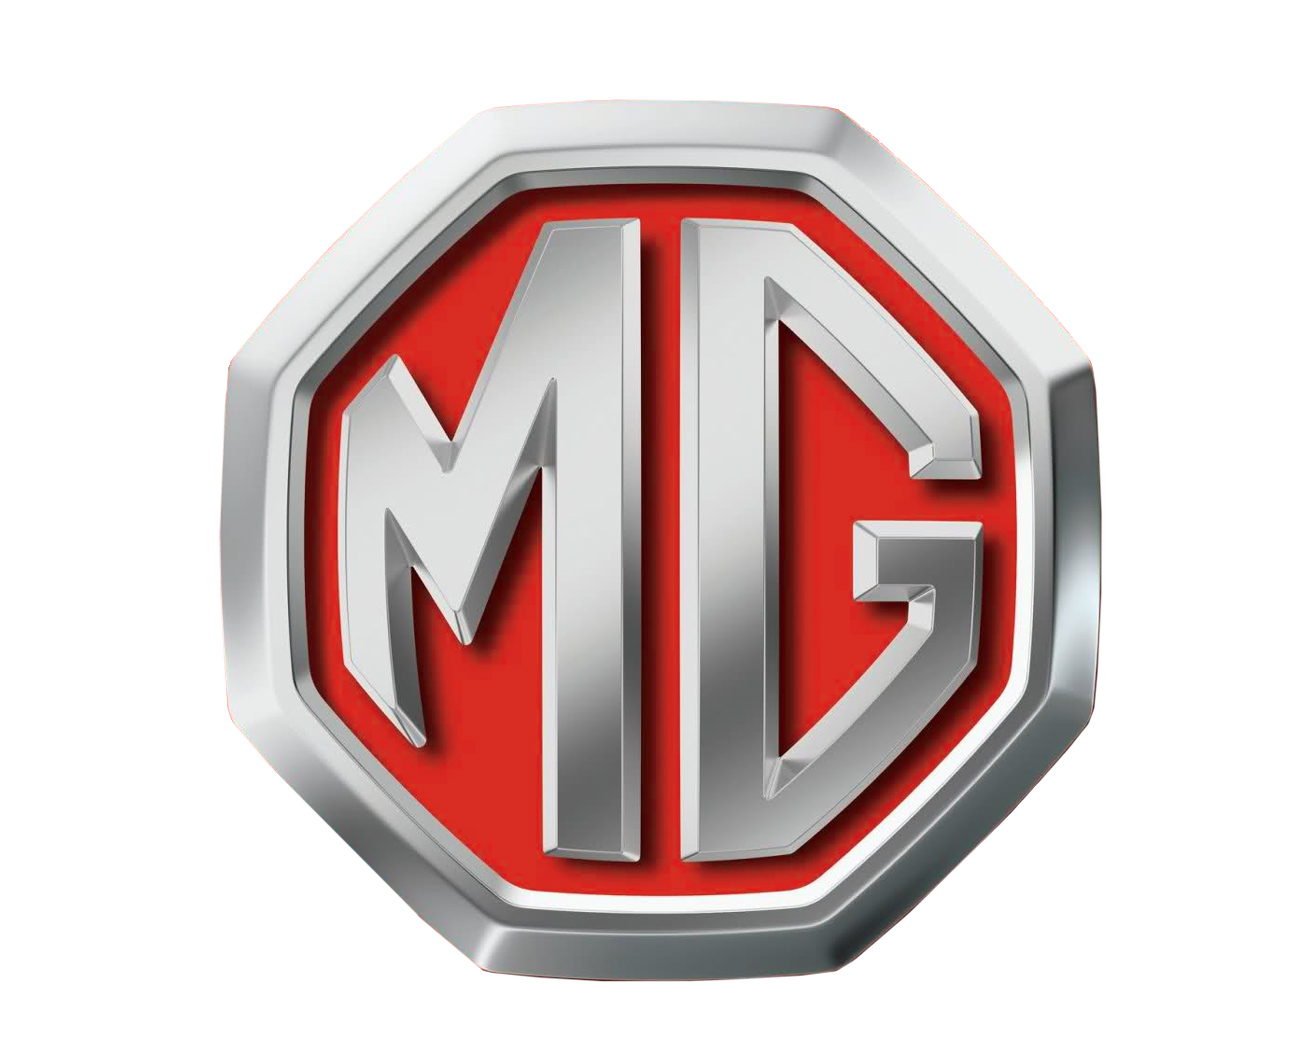 All Car Logos With Names >> Large MG Car Logo - Zero To 60 Times